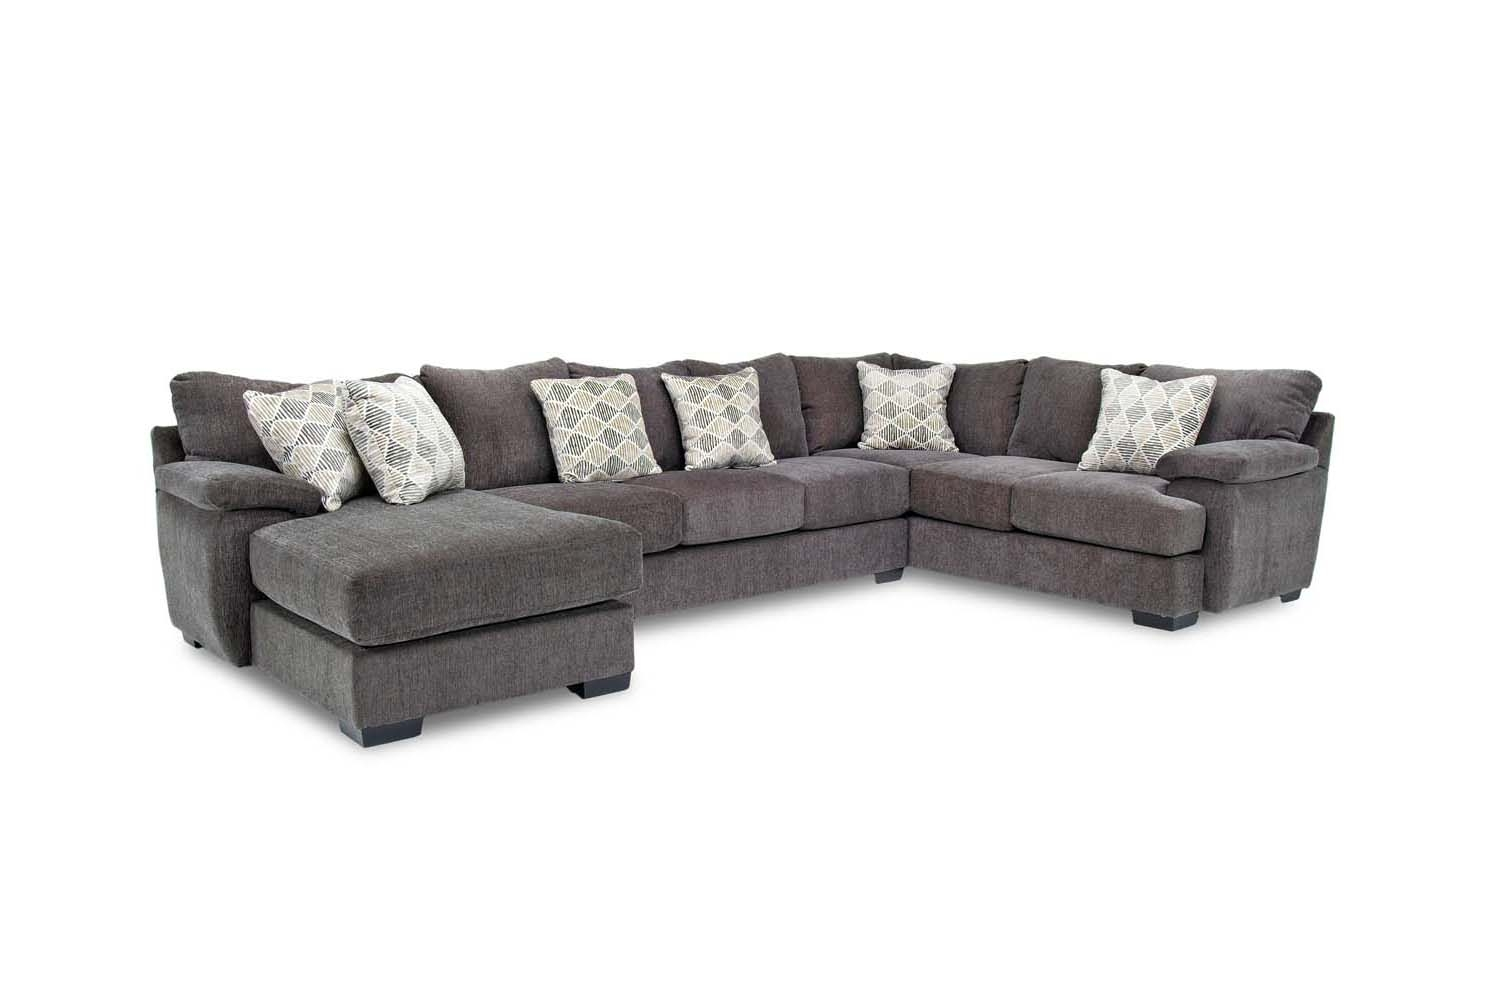 Pleasing Sectional Couches Sofas Mor Furniture Pabps2019 Chair Design Images Pabps2019Com